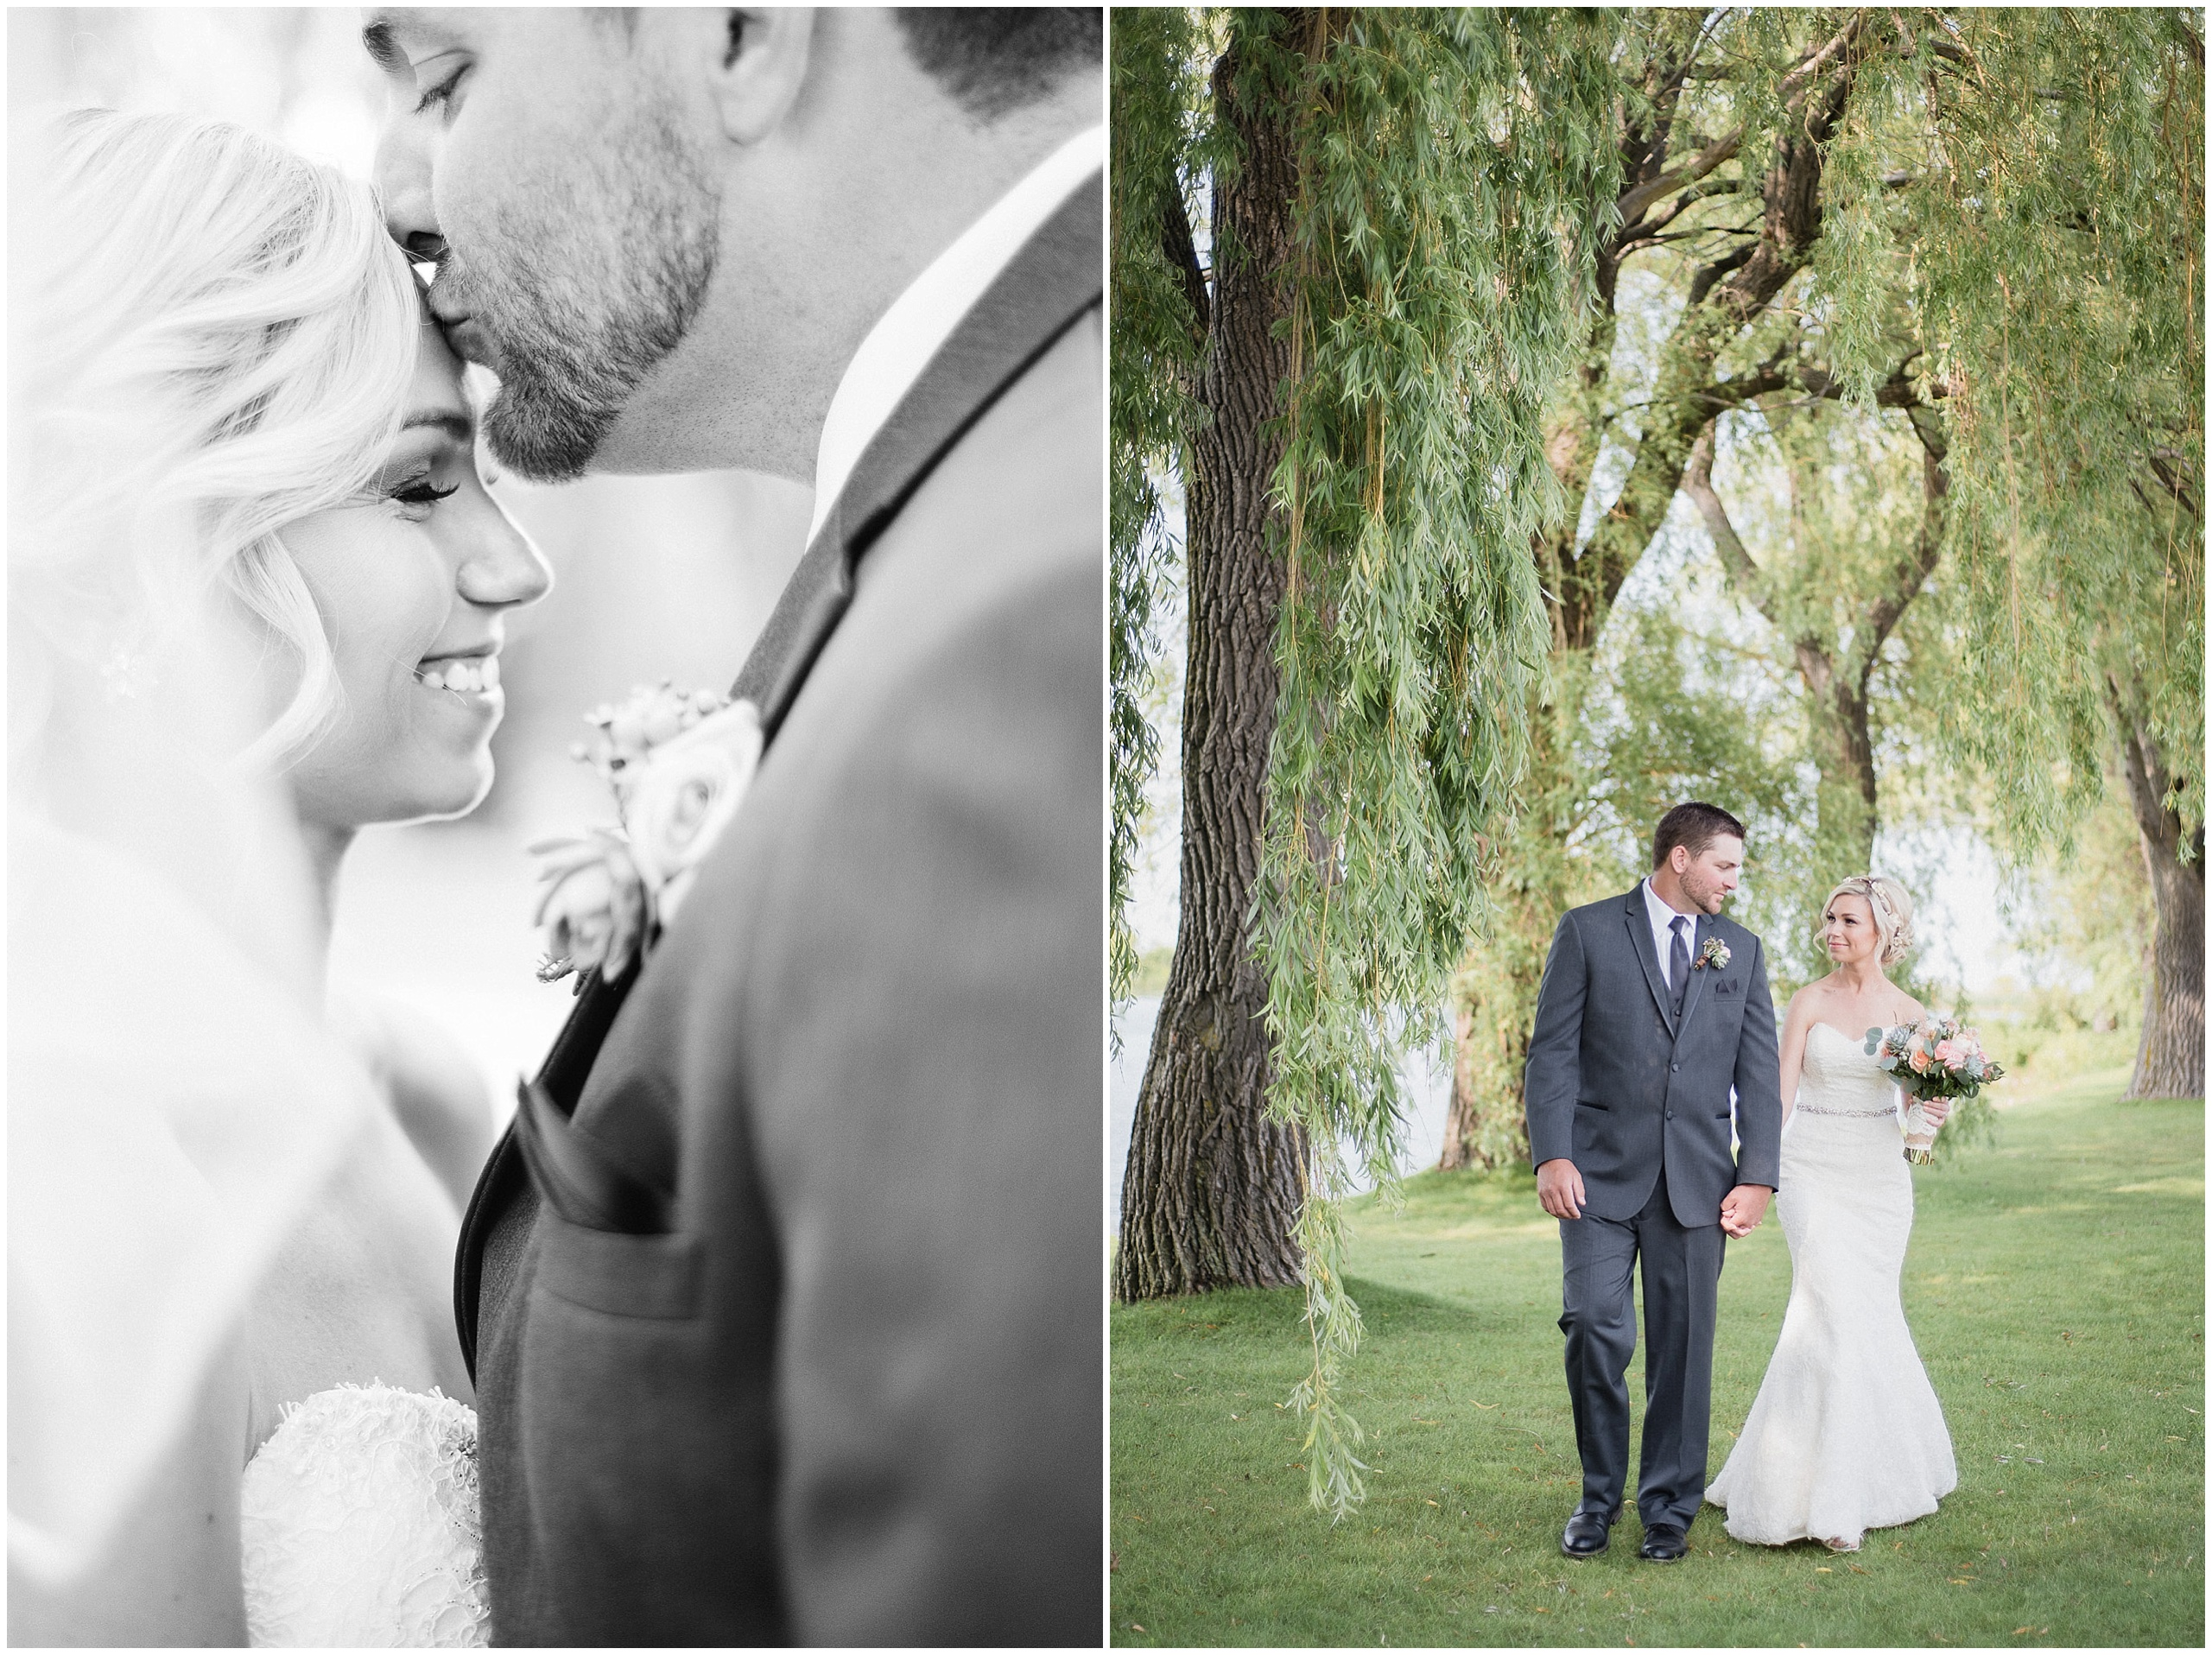 Stunning bride and groom at their Bear Estate Wedding, photographed by Jenn Kavanagh Photography